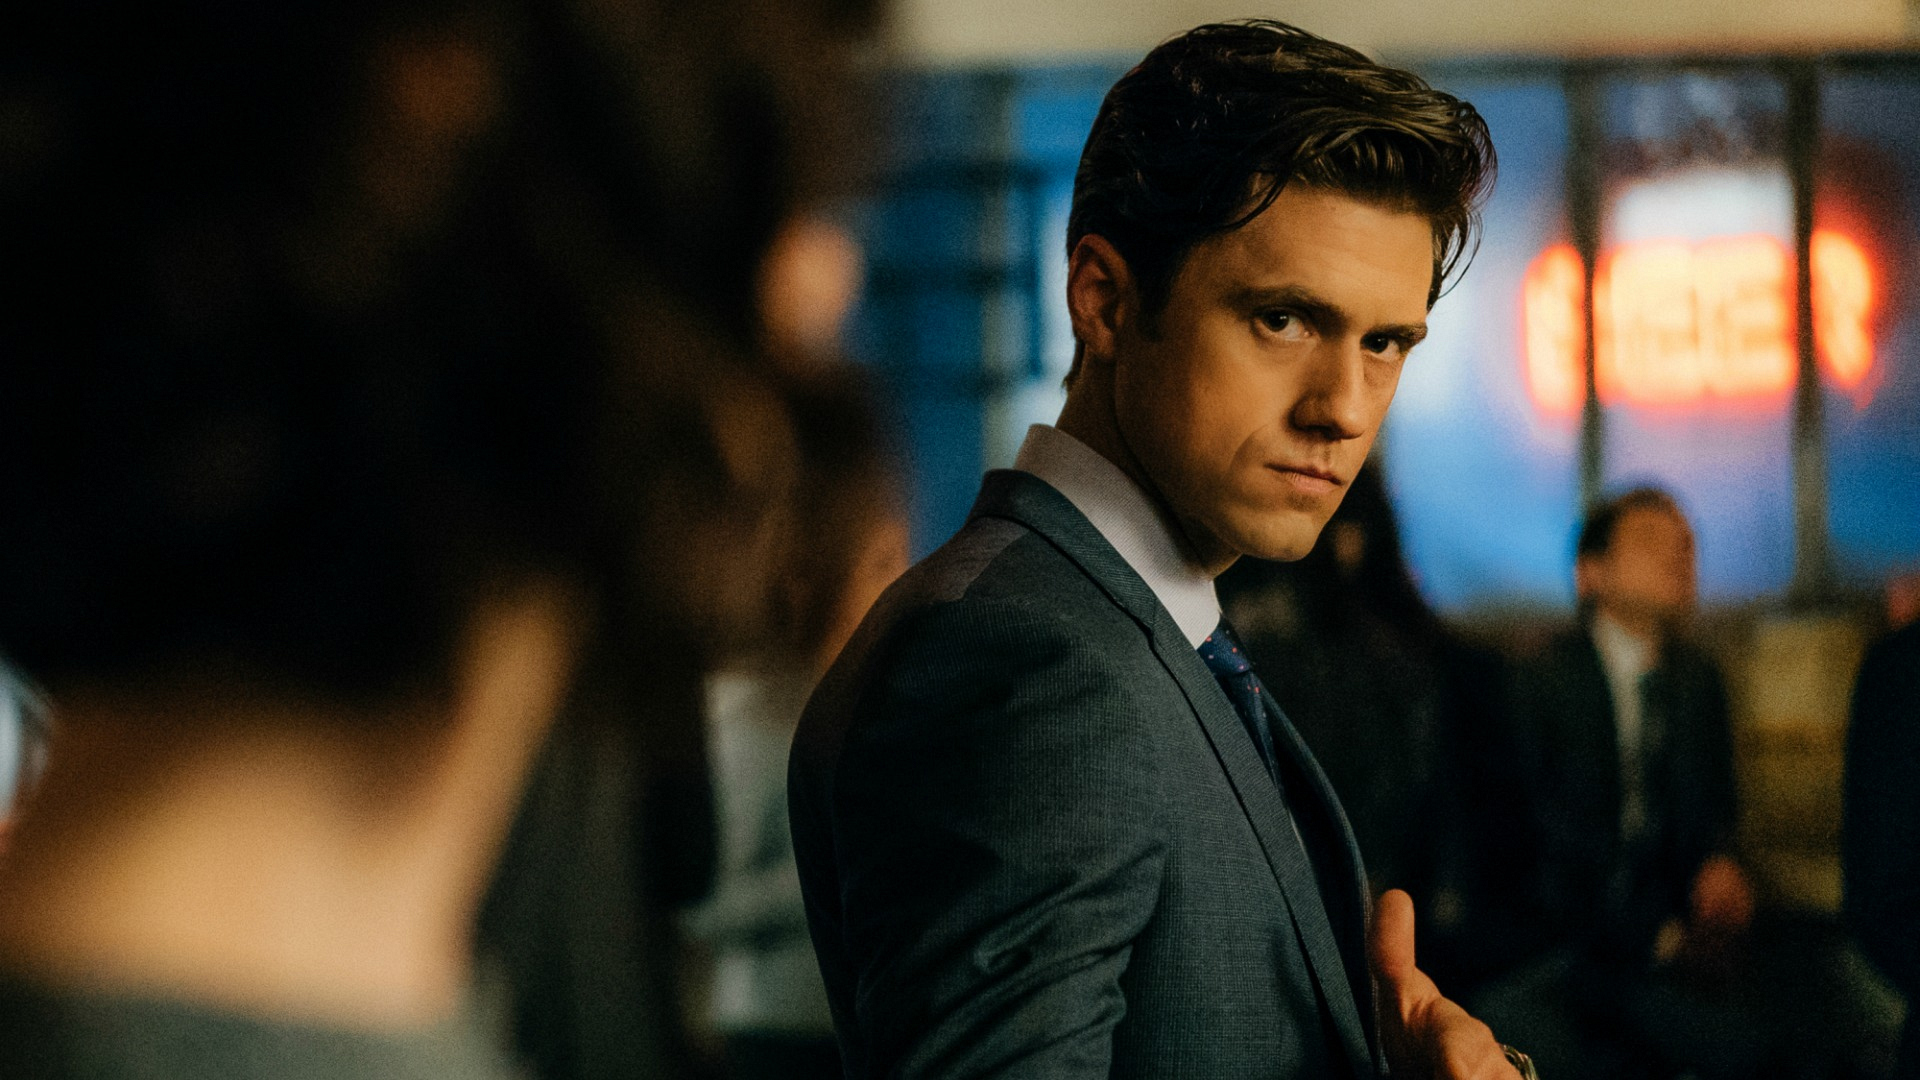 Gareth has a quick chat with Laurel regarding her newest romantic interest.